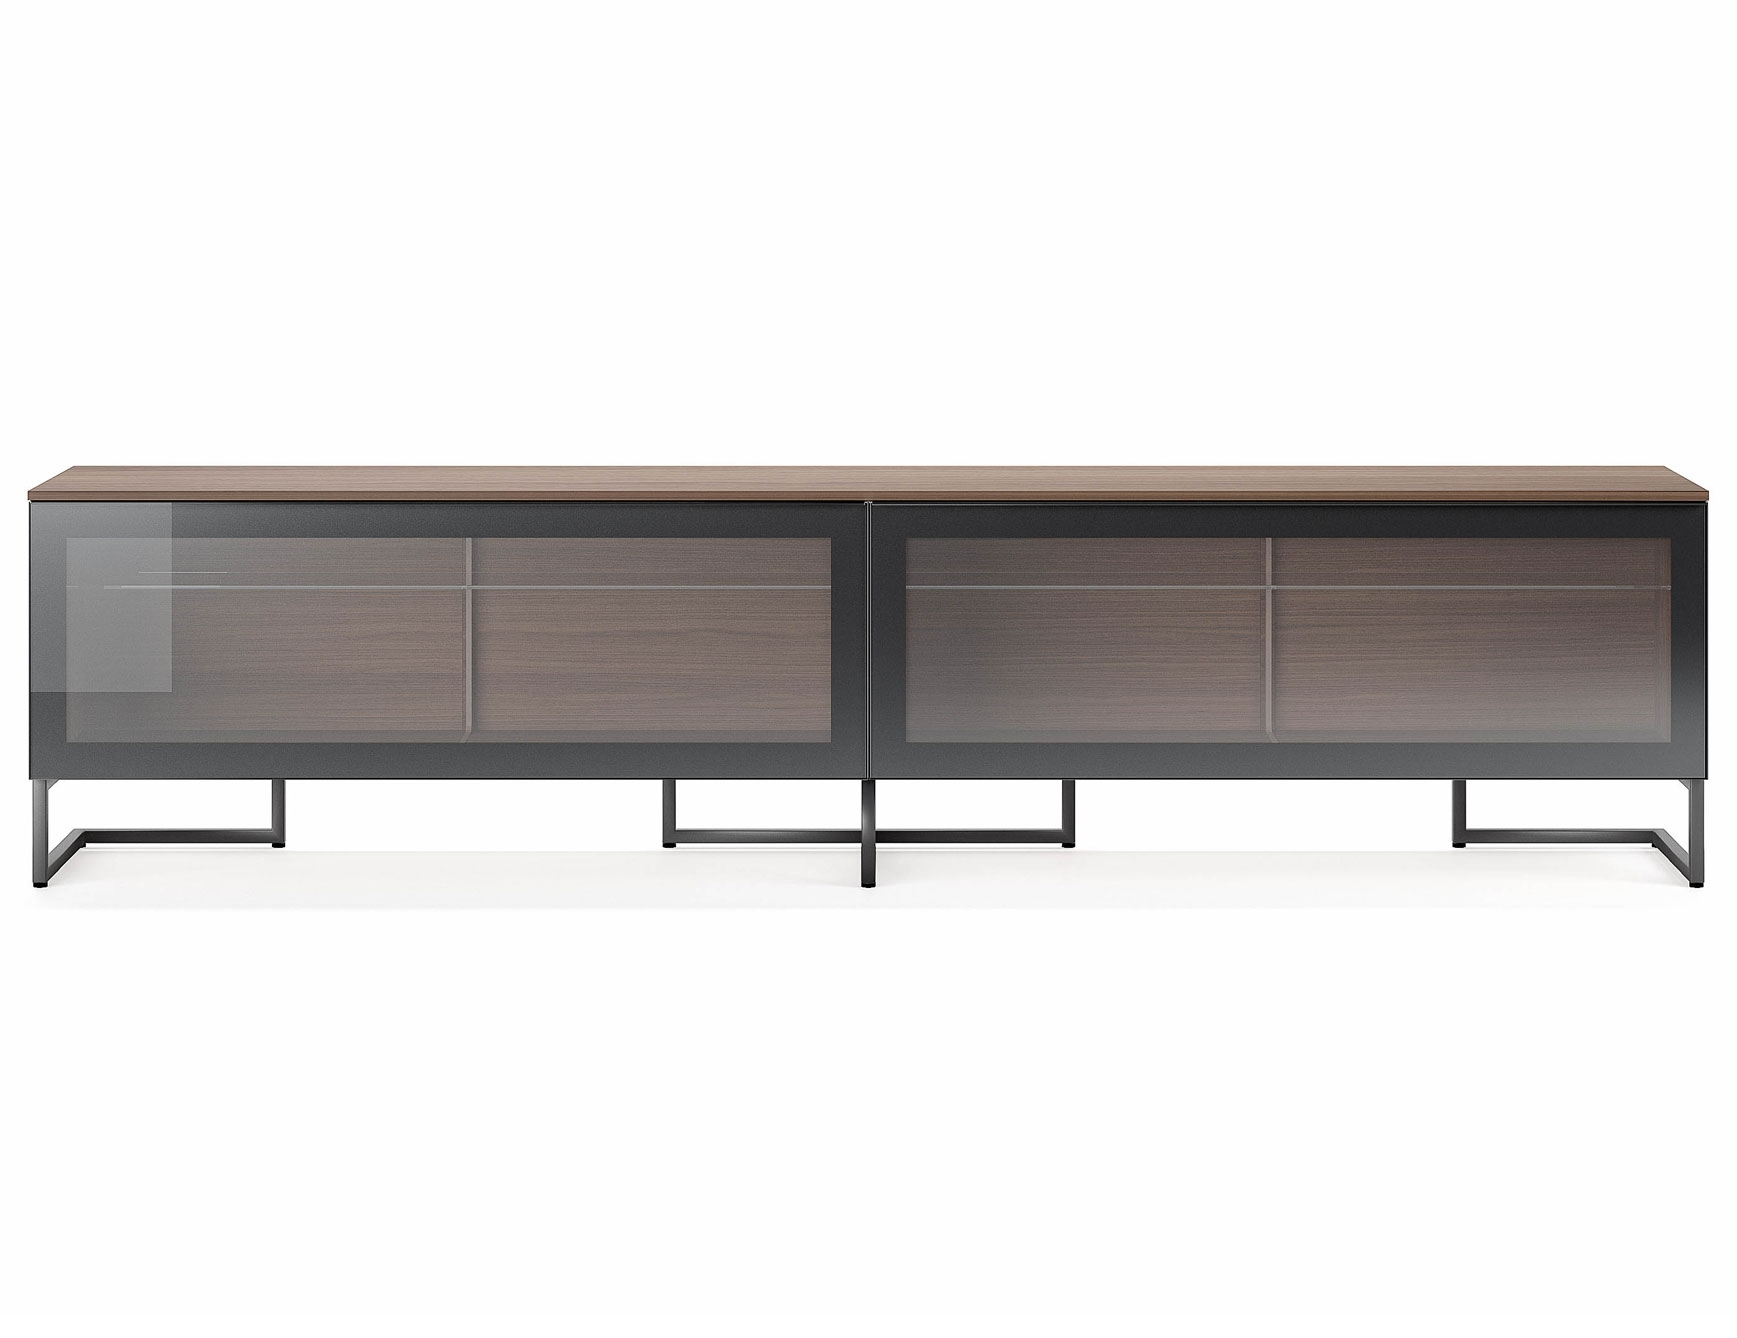 Nella Vetrina Pianca Spazio Sgm240 Contemporary Italian Tv Unit In Throughout Black Burnt Oak Sideboards (Photo 25 of 30)